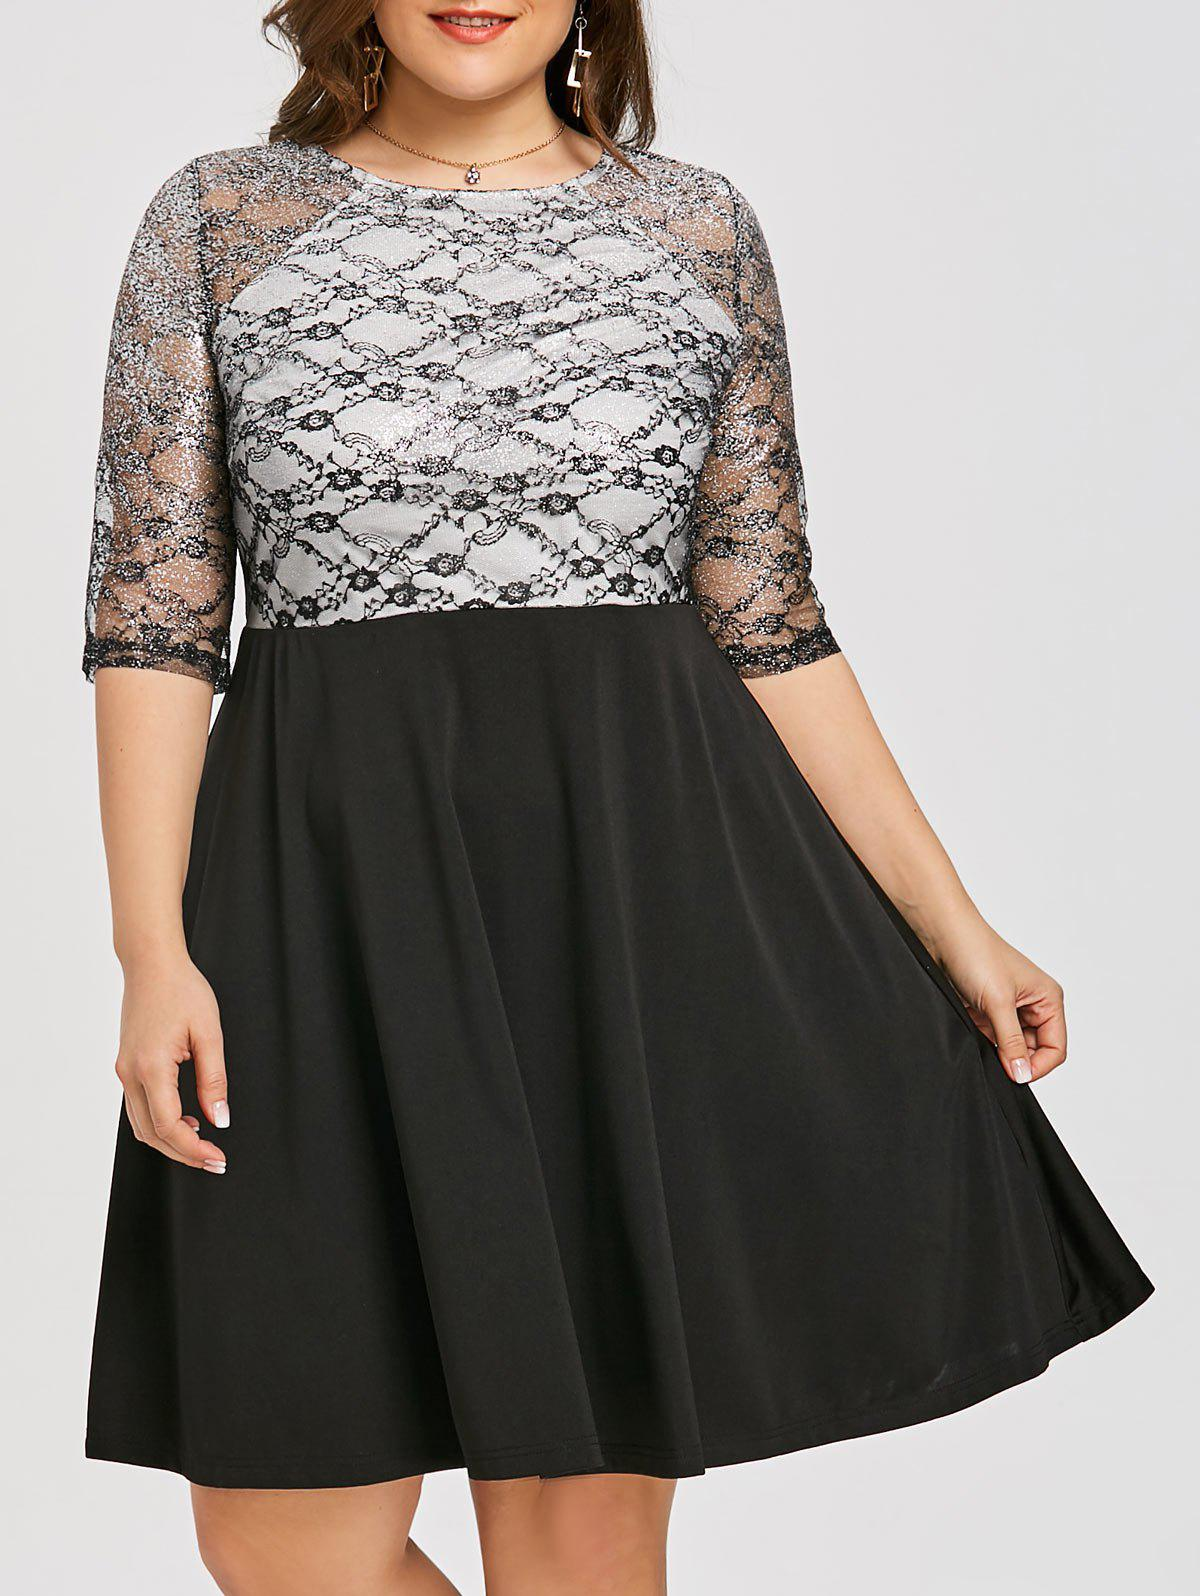 Lace Overlay Plus Size Fit and Flare Dress guipure lace overlay fit and flare dress